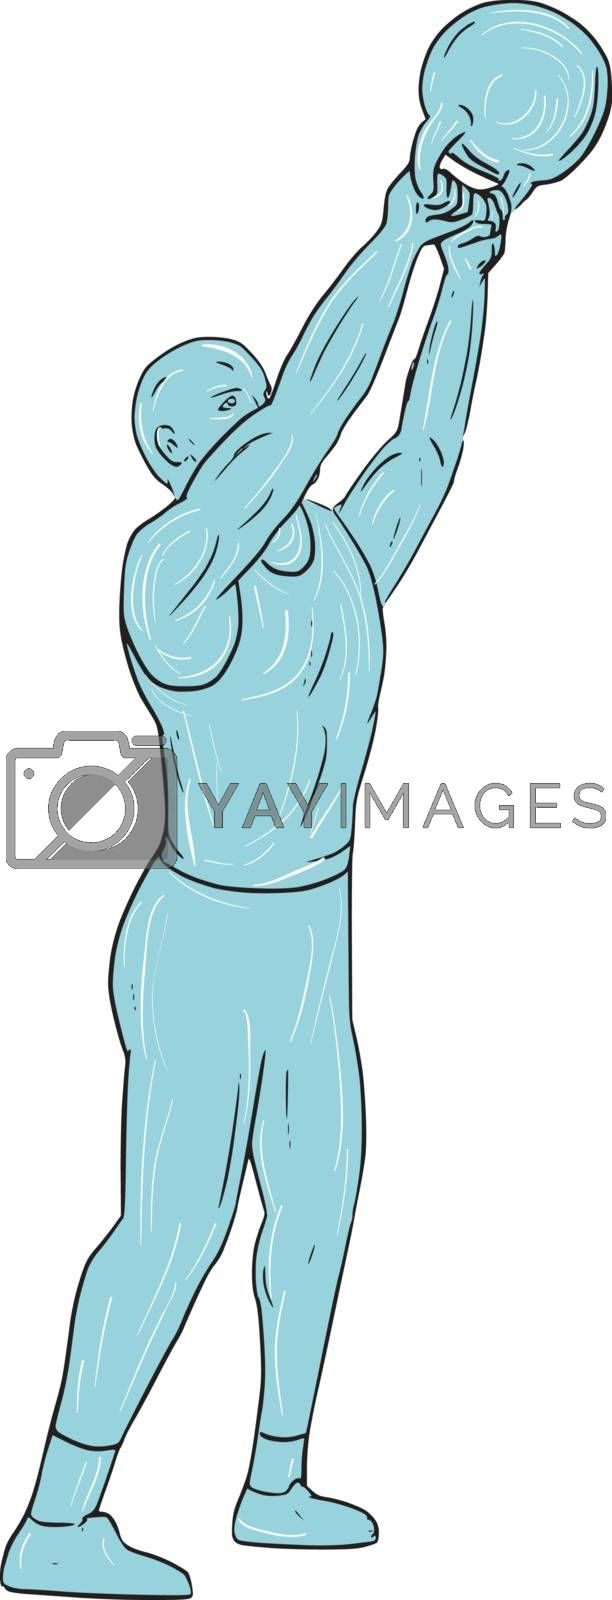 Drawing sketch style illustration of an athlete weightlifter working out looking up lifting swinging kettlebell up with both hands viewed from the side set on isolated white background.